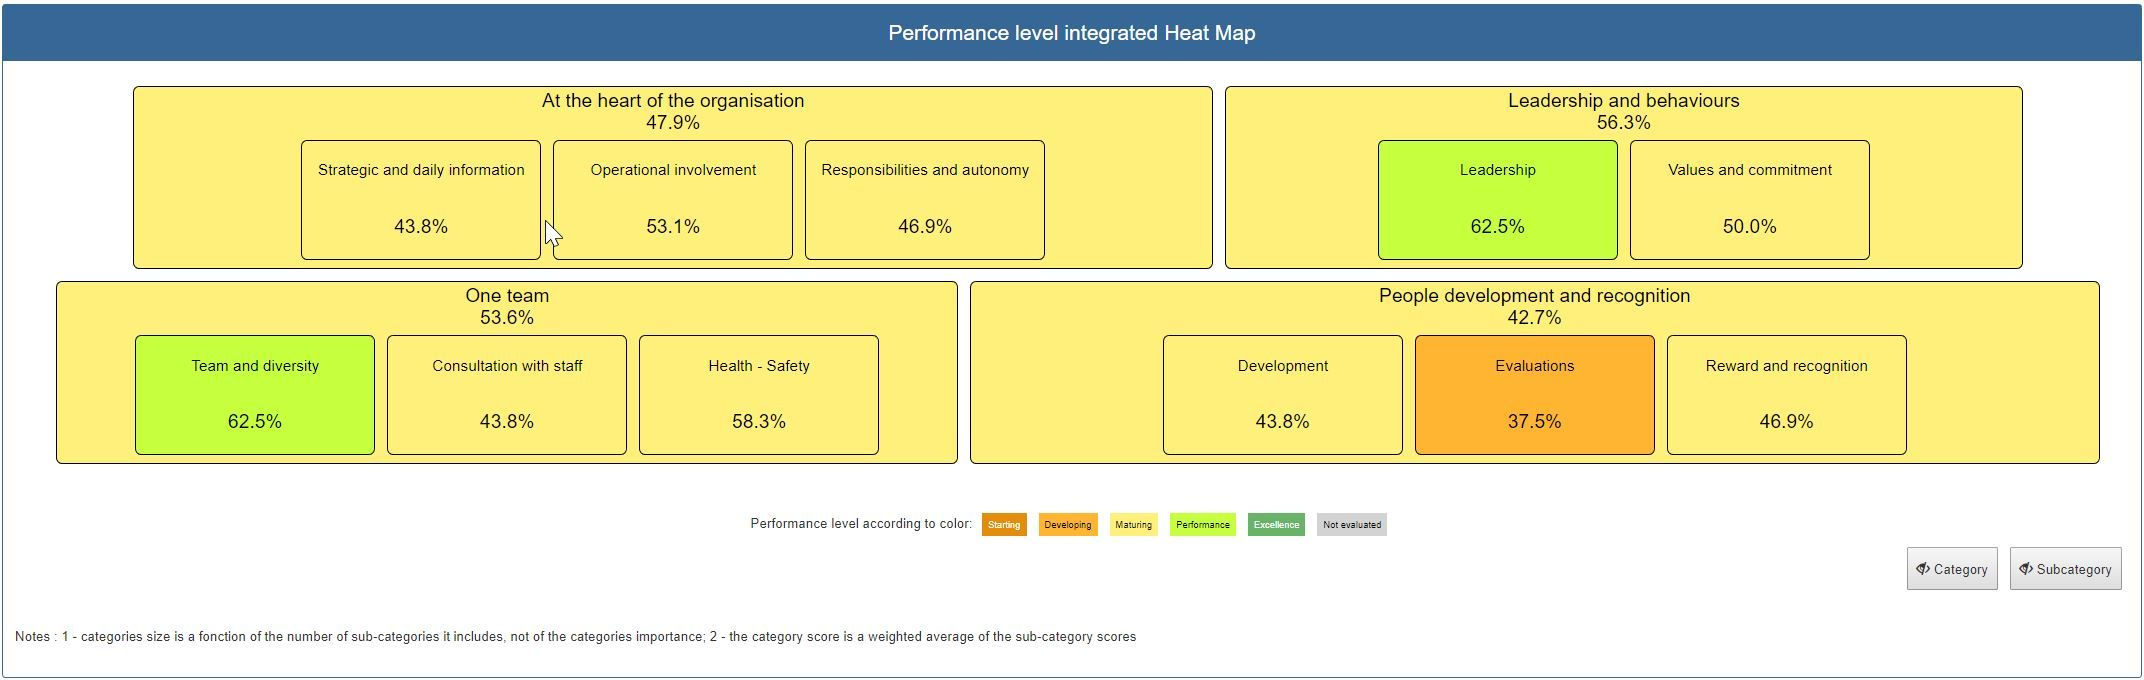 results_employee_engagement_heatmap-compress.jpg